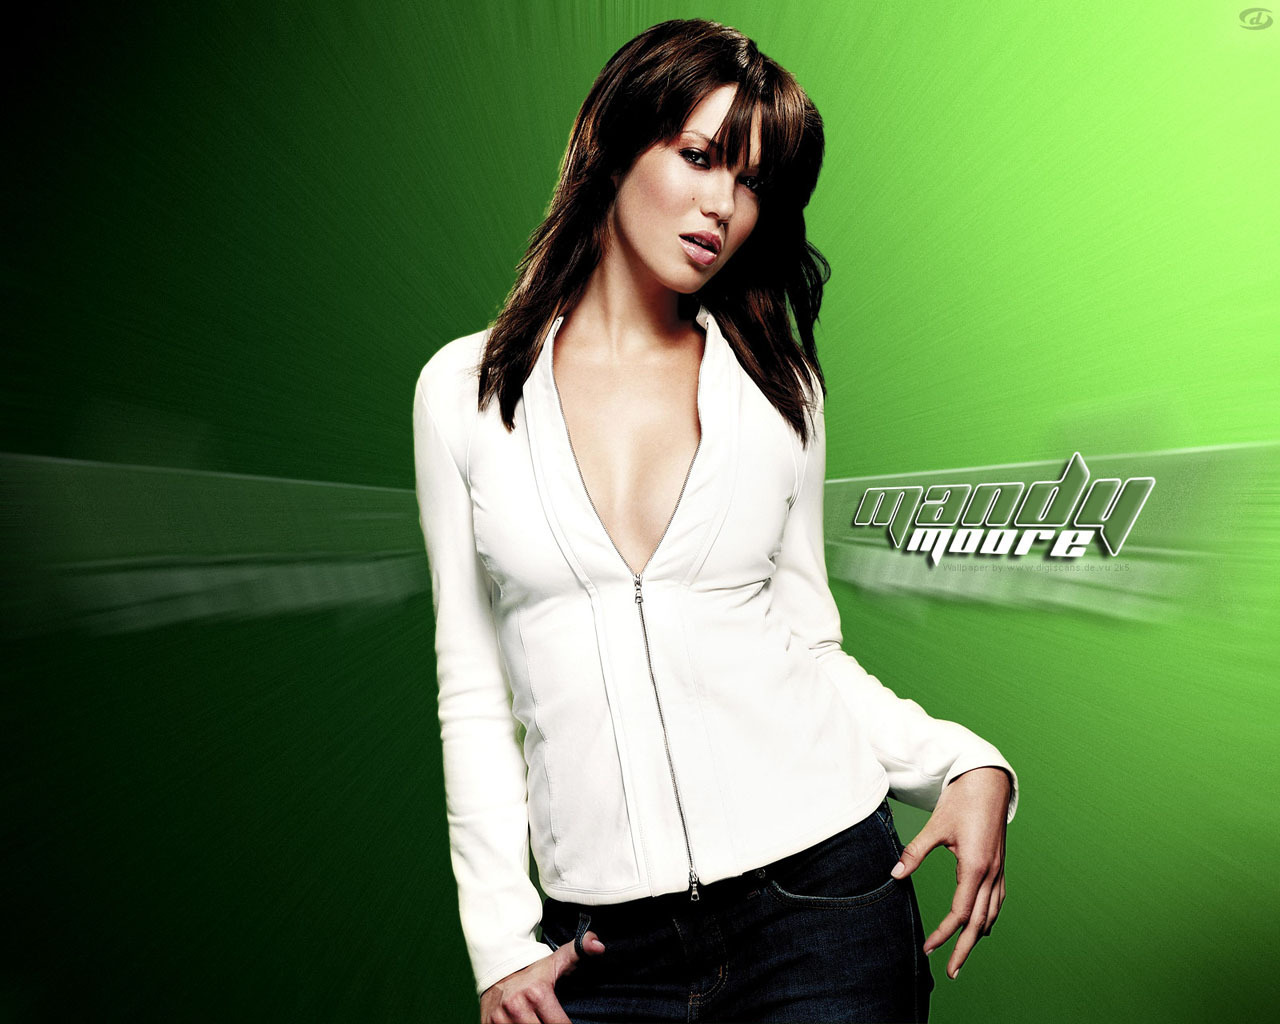 mandy moore images mandy moore hd wallpaper and background photos